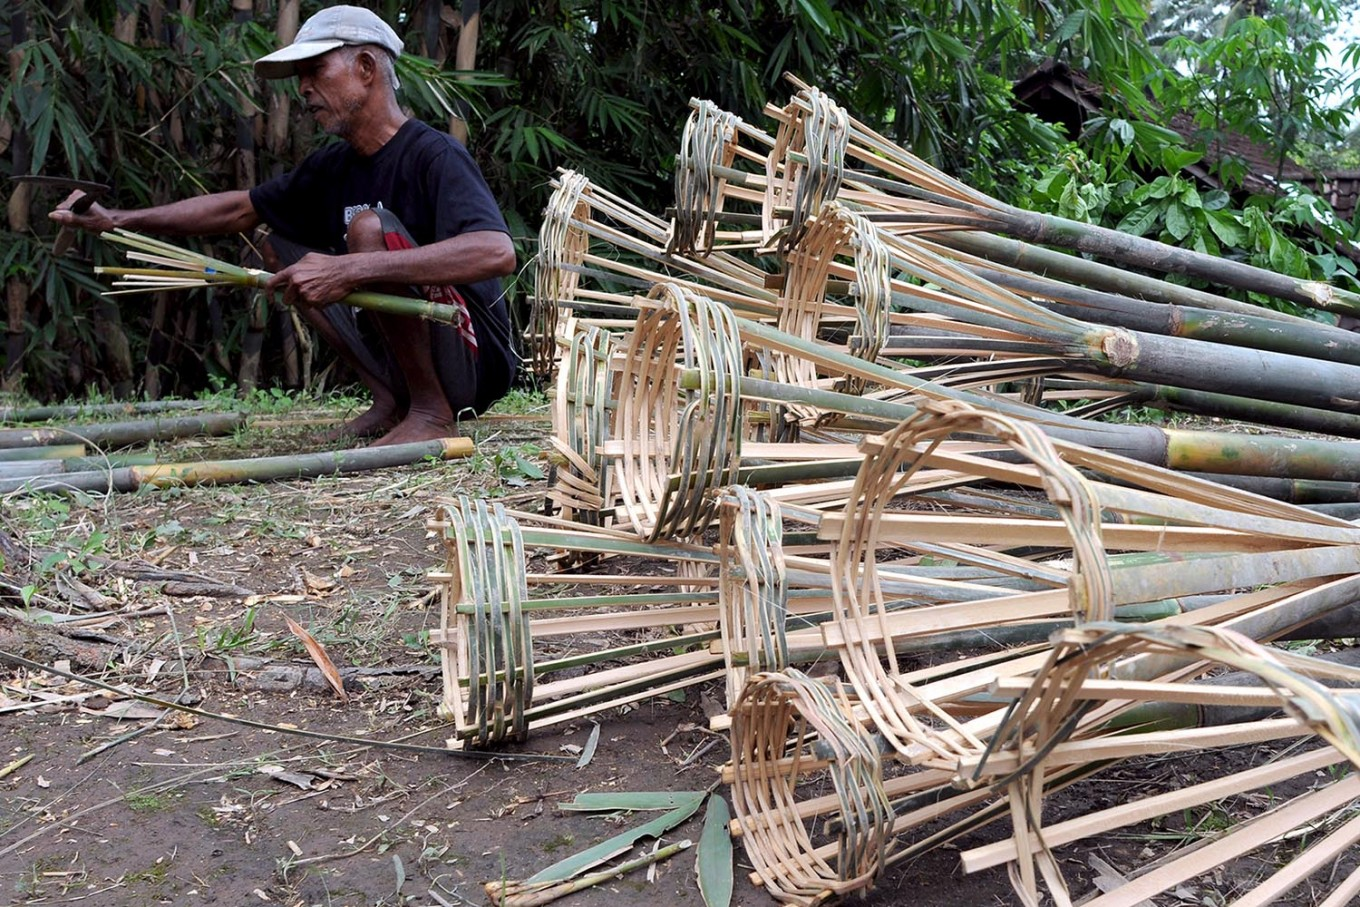 A villager makes torches from bamboo for the Kapundhan Udan festival. JP/Magnus Hendratmo